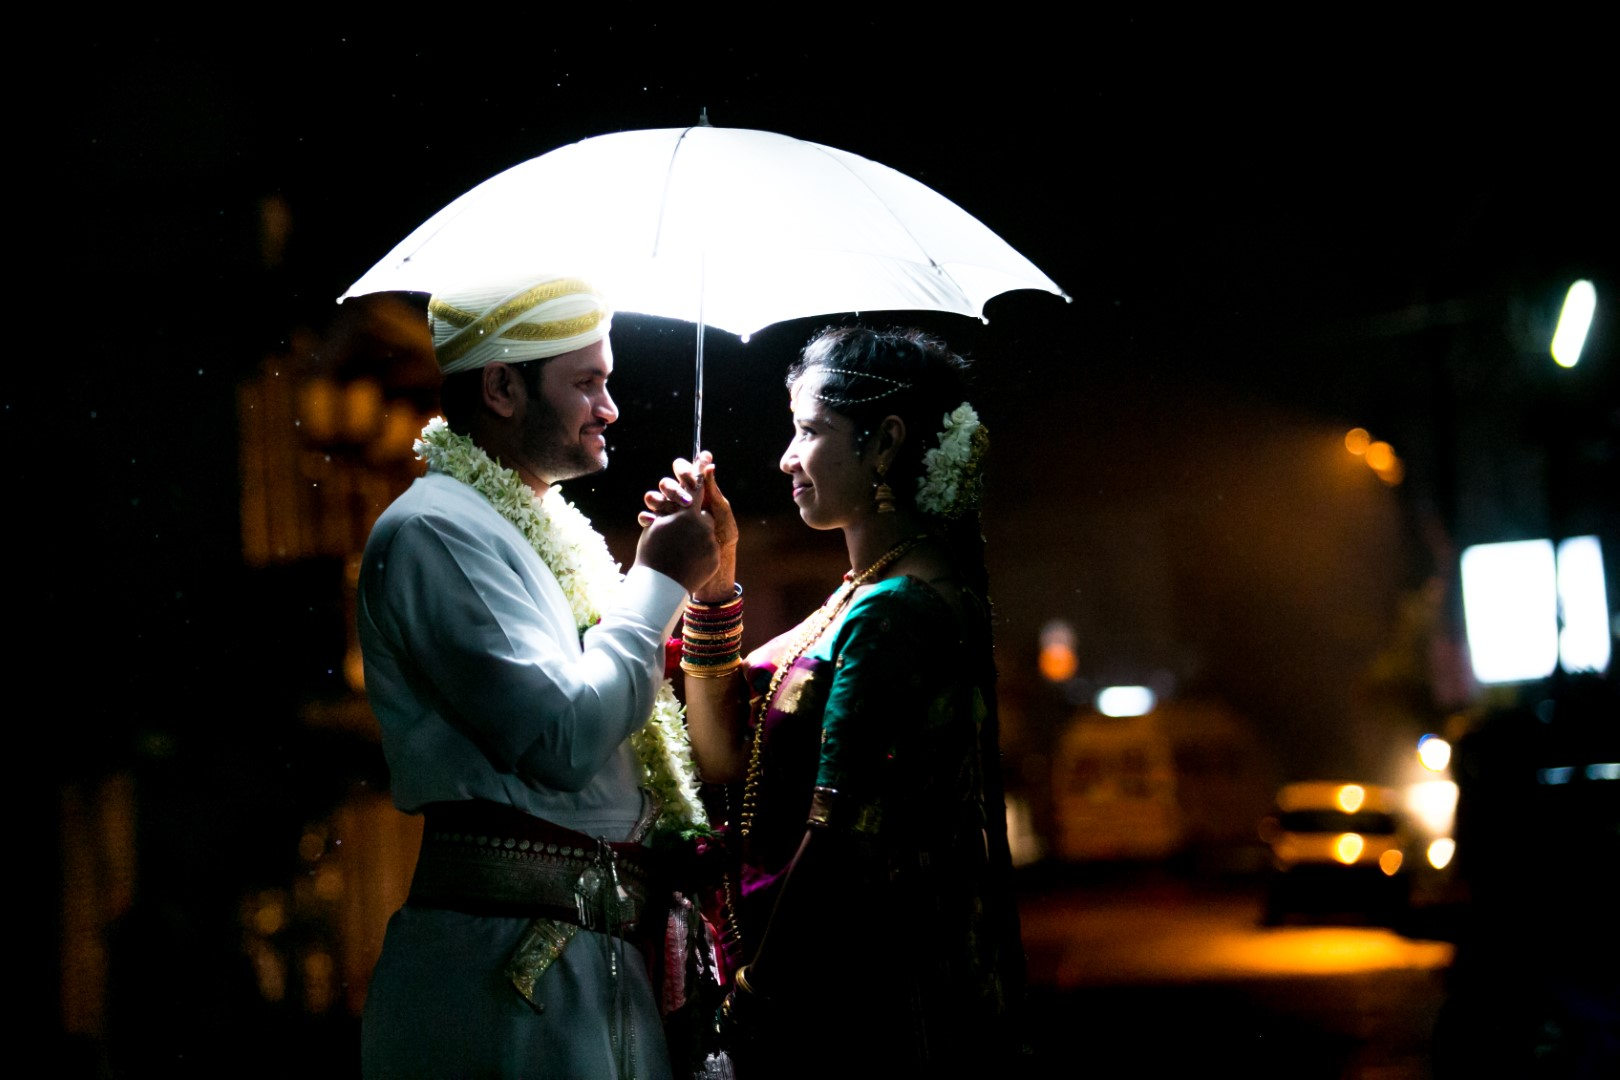 Ranjitha & Pavan - Sharath Padaru's work was done to such a high standard, he is very professional and confident in his work which I think is really important. He captured our wedding perfectly. Every little detail was captured to treasure as precious memories forever. We can't thank you enough for all your hard work, we never thought we would have pictures like these. We would highly recommend him to other couples for their wedding day as he did such an amazing job on ours. Thank you Sharath :)